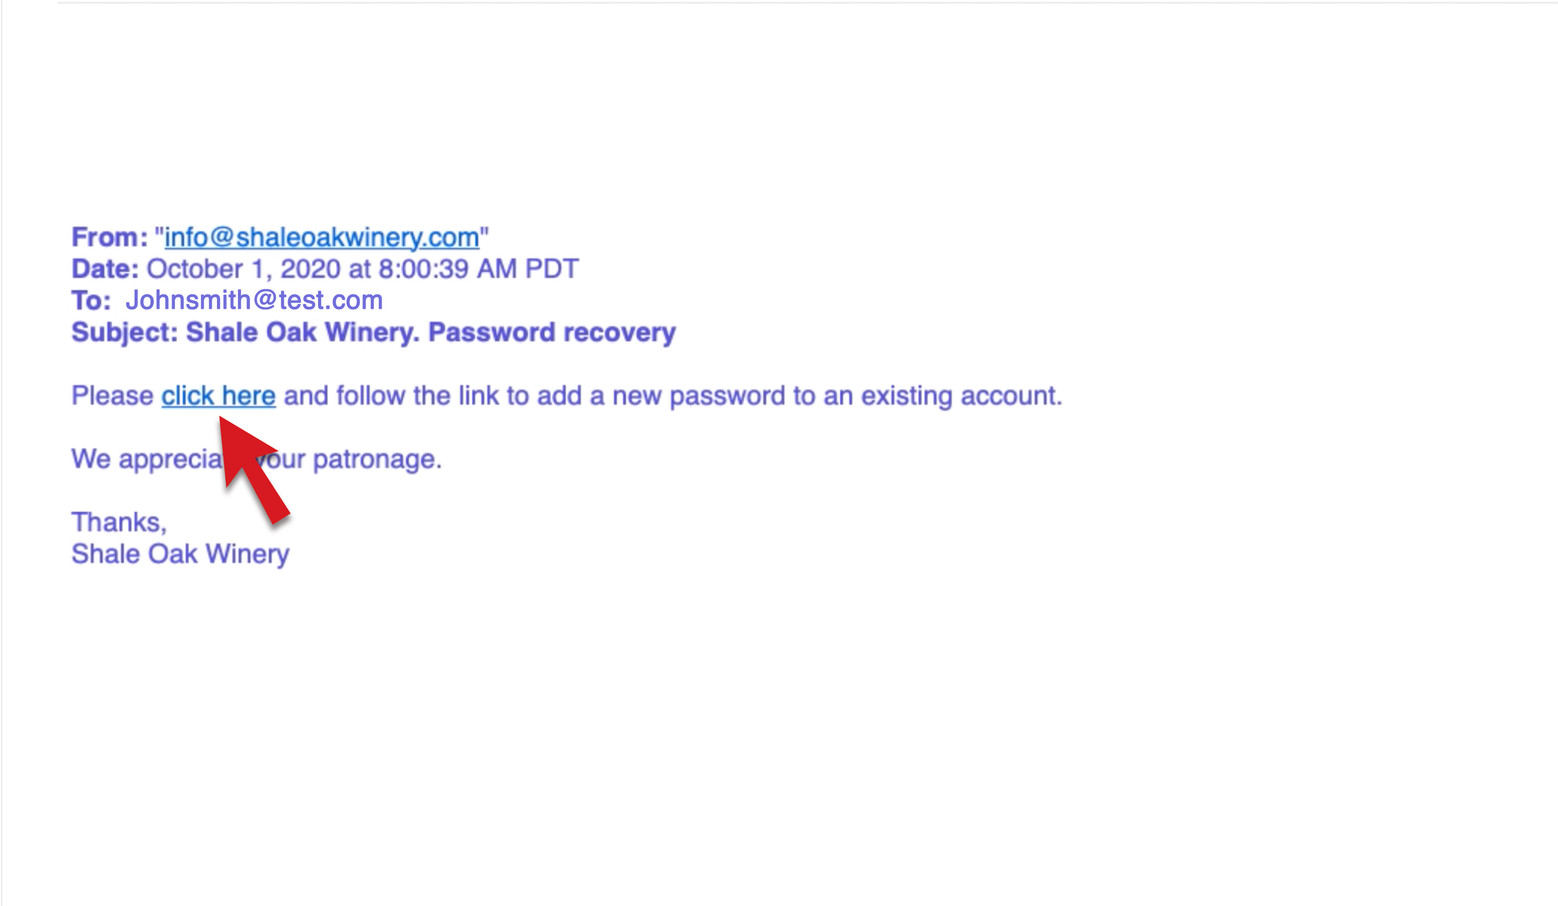 Click the link in the email to add or reset a password.